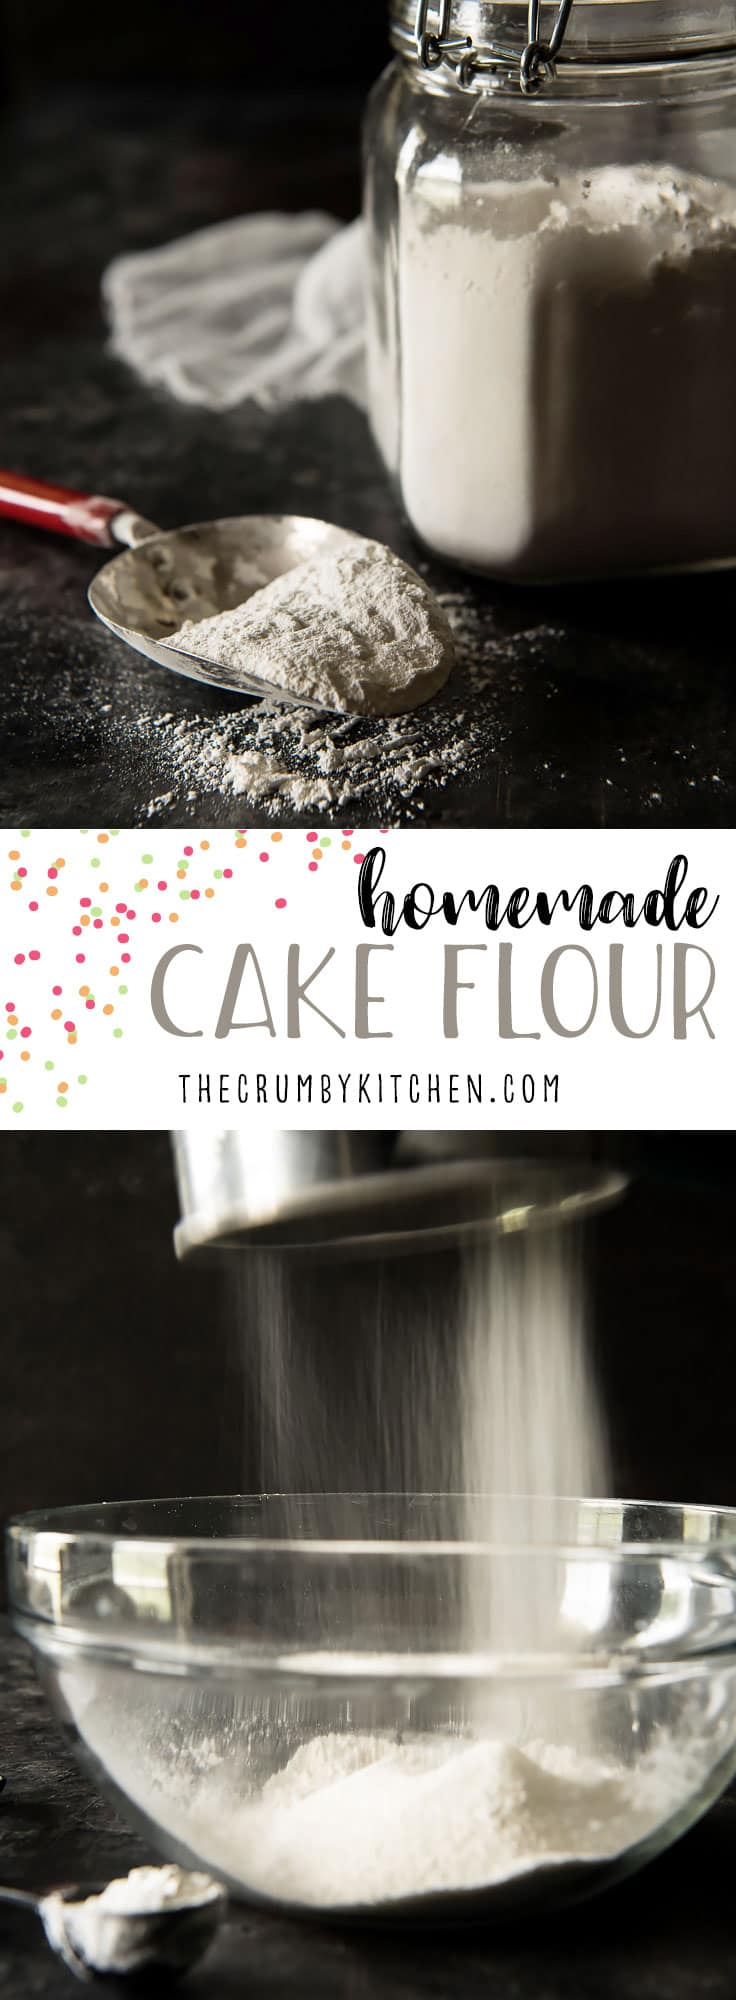 In need of cake flour, but don't have time to run to the store? Here's how to make a homemade cake flour substitute from two pantry staples.